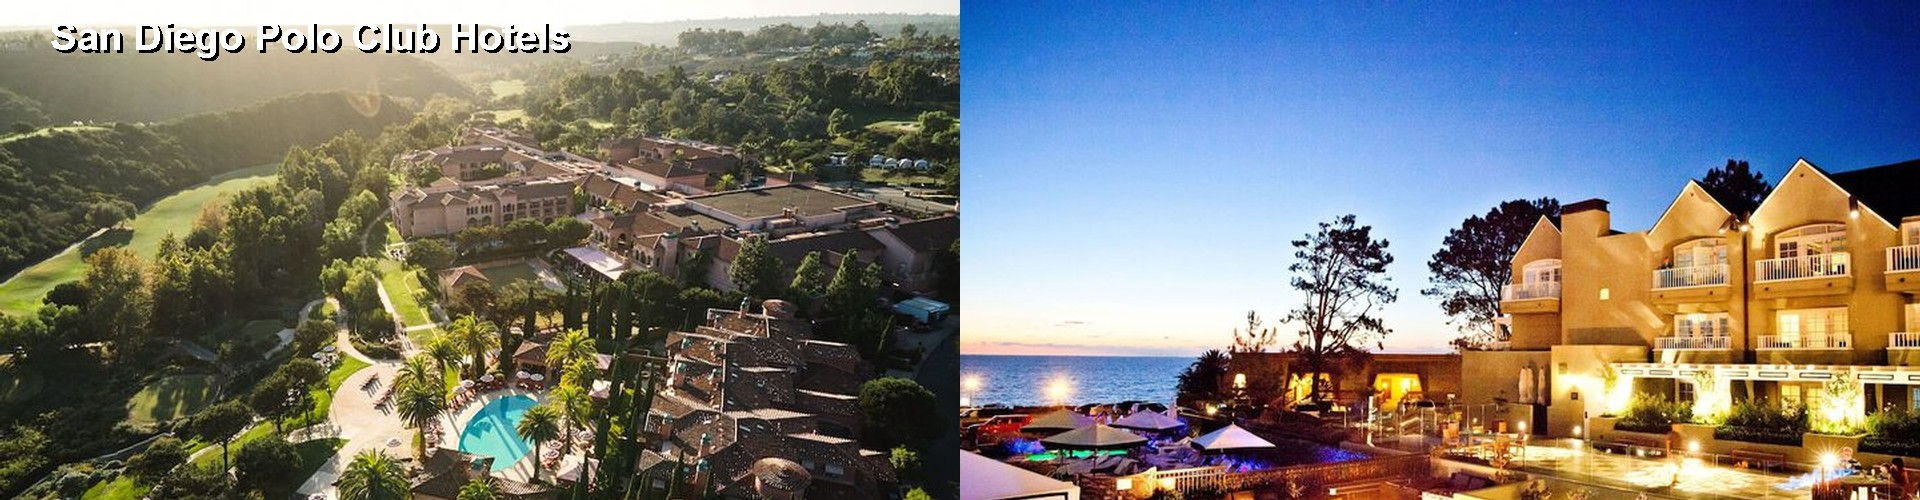 $47+ Hotels Near San Diego Polo Club in Del Mar (CA)